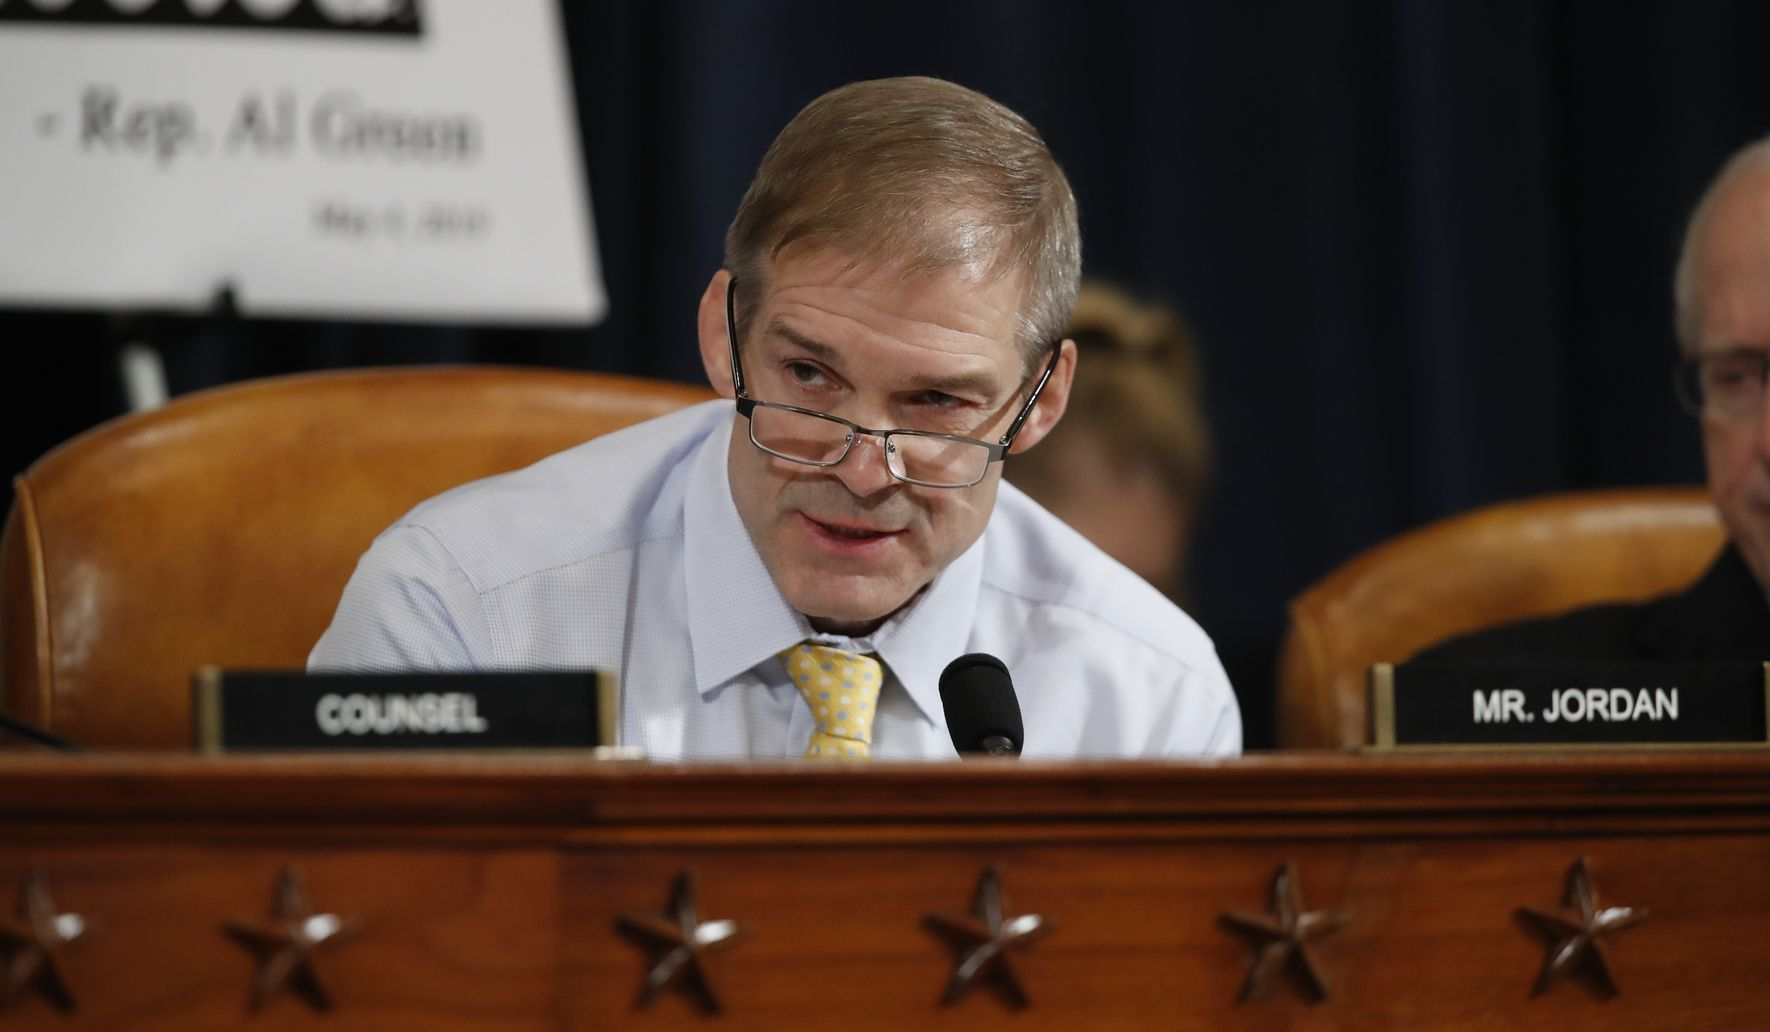 Whistleblower's identity looms large at House impeachment hearing